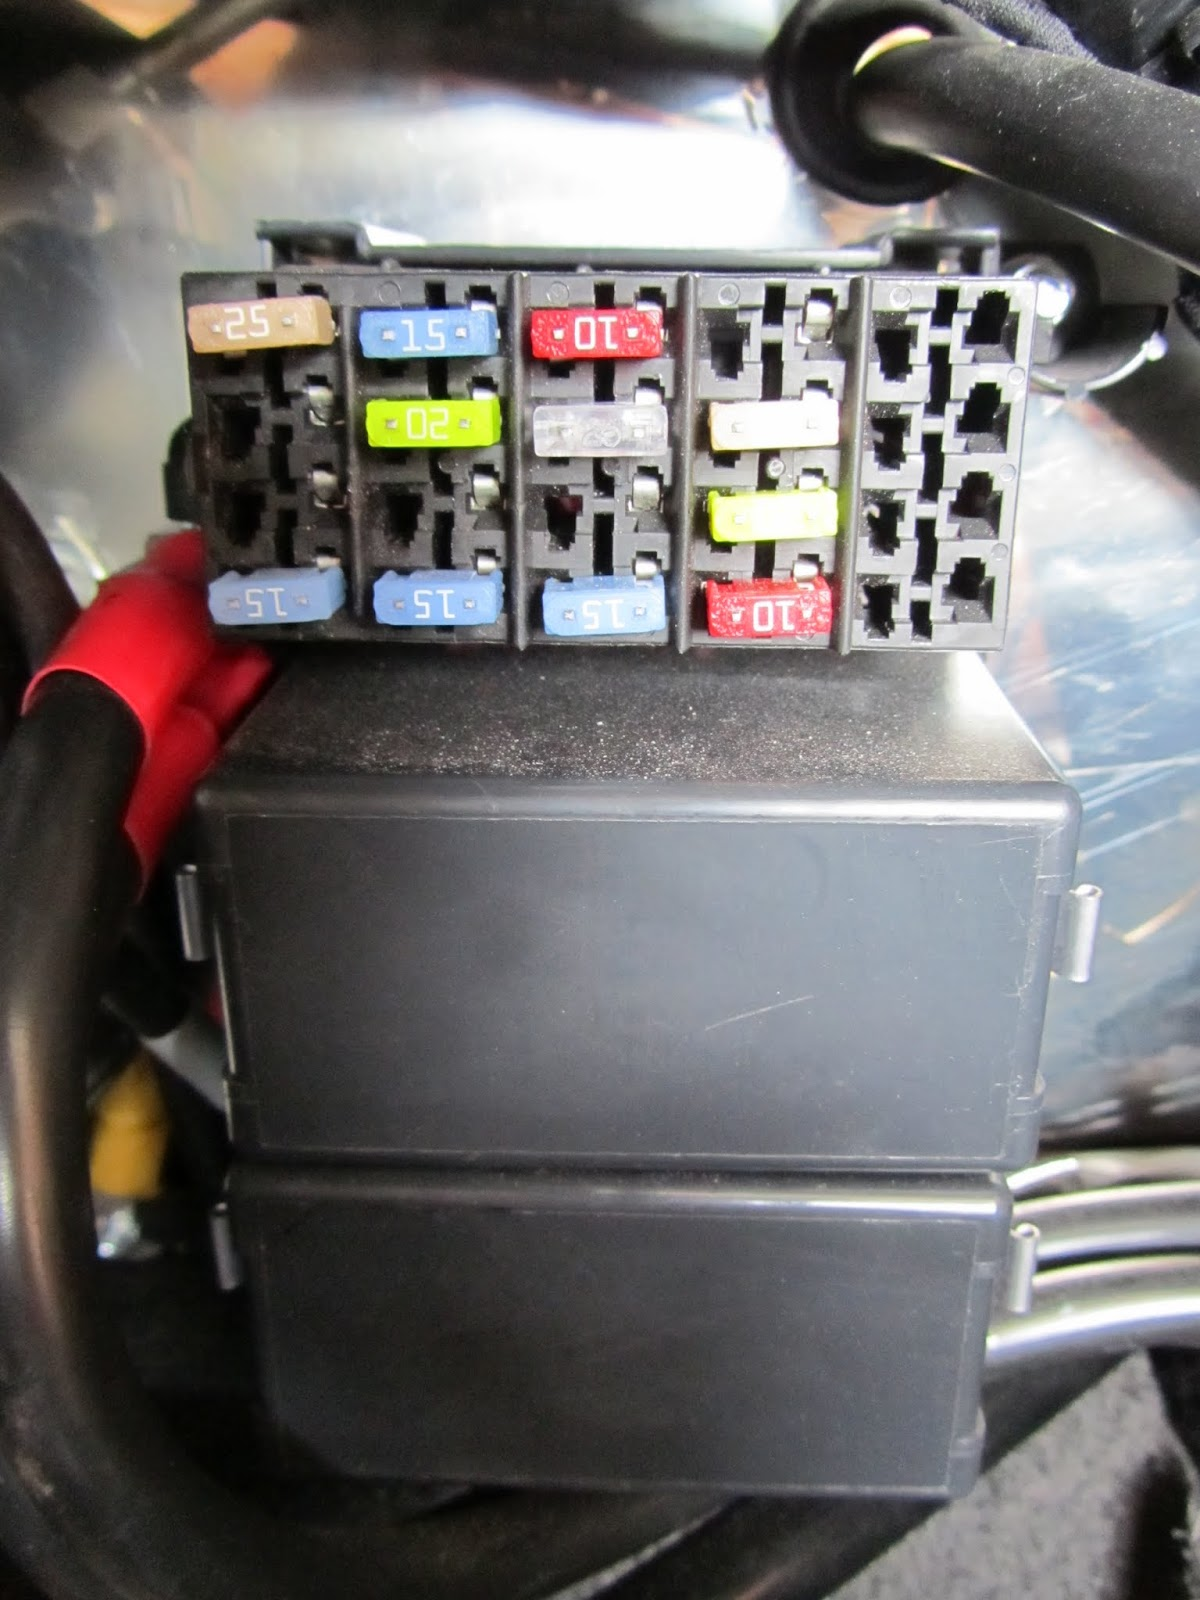 Richards Gbs Zero Fuse Box Adding Circuits Found The Part Numbers In Area You Can See Plenty Of Spare Slots Many Already With 12v Feeds On Right Hand Side Each Socket